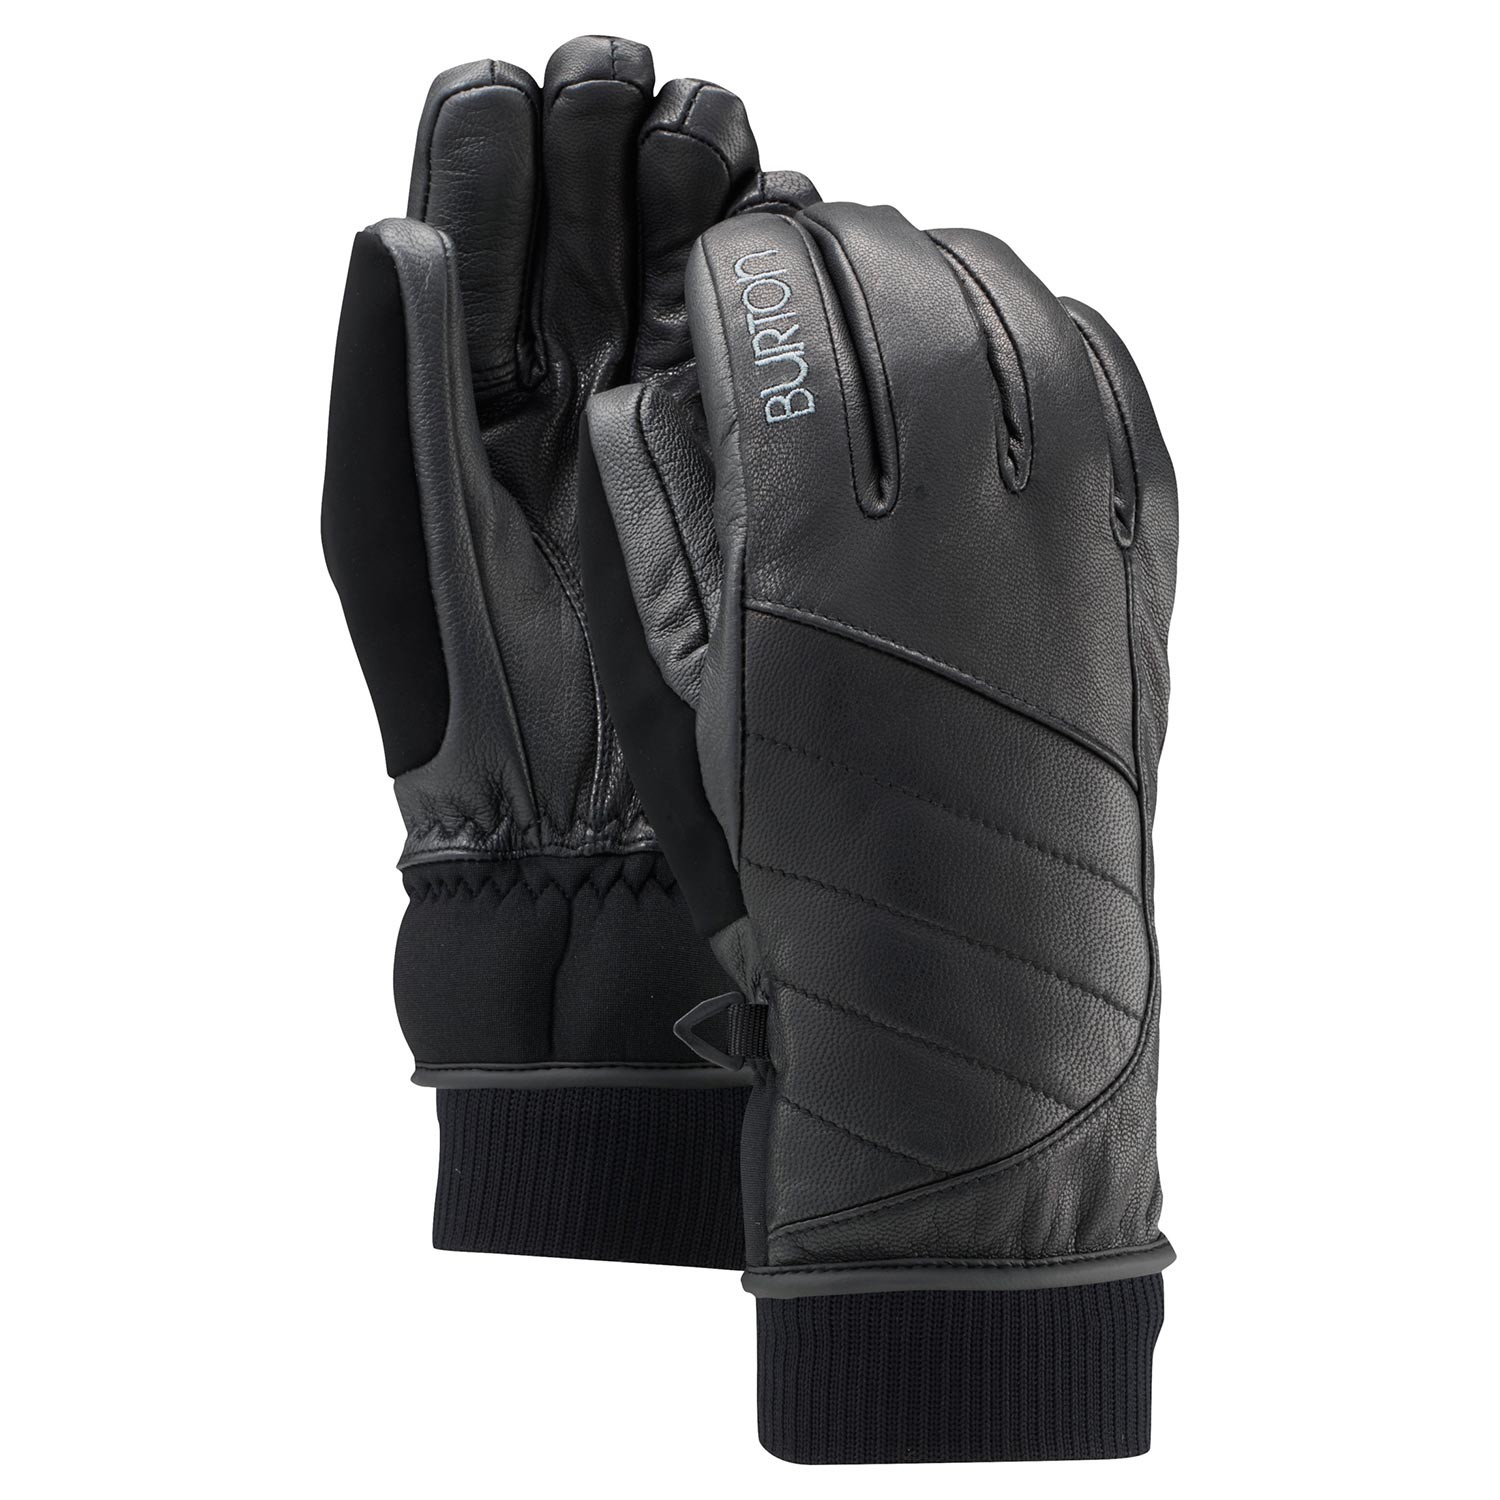 Rukavice Burton Favorite Leather true black